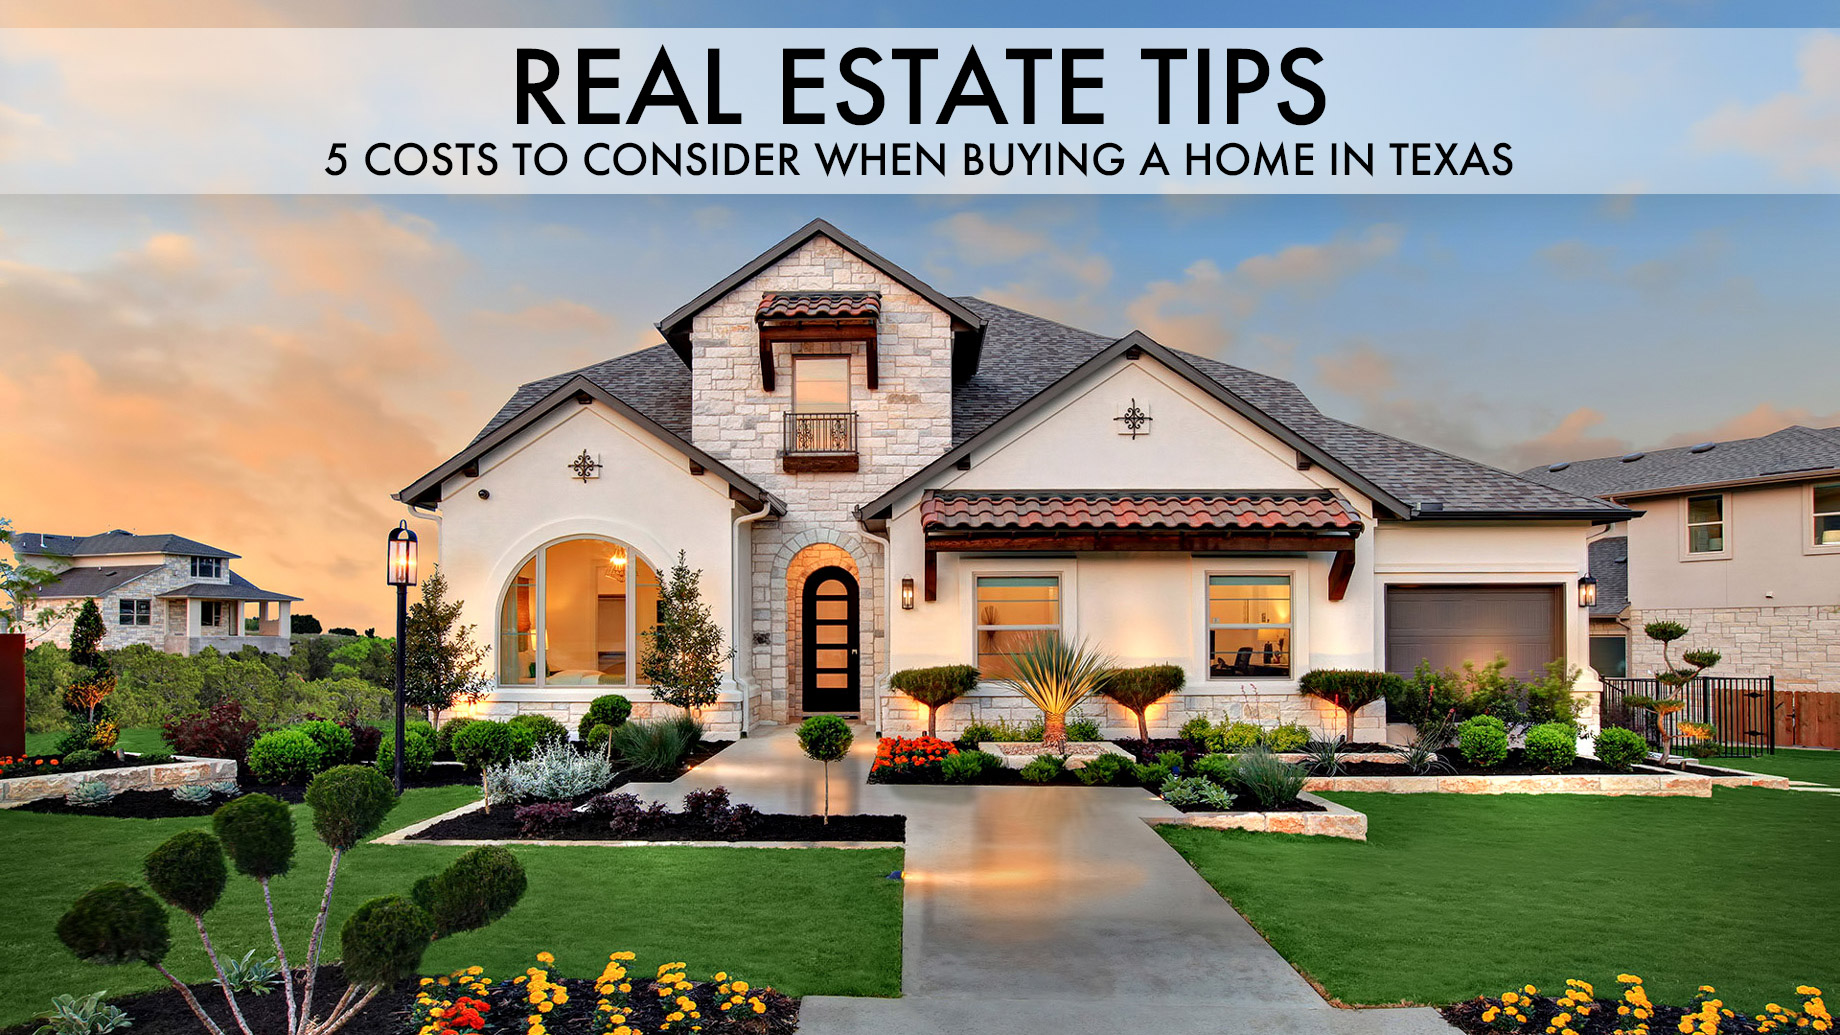 Real Estate Tips - 5 Costs to Consider When Buying a Home in Texas